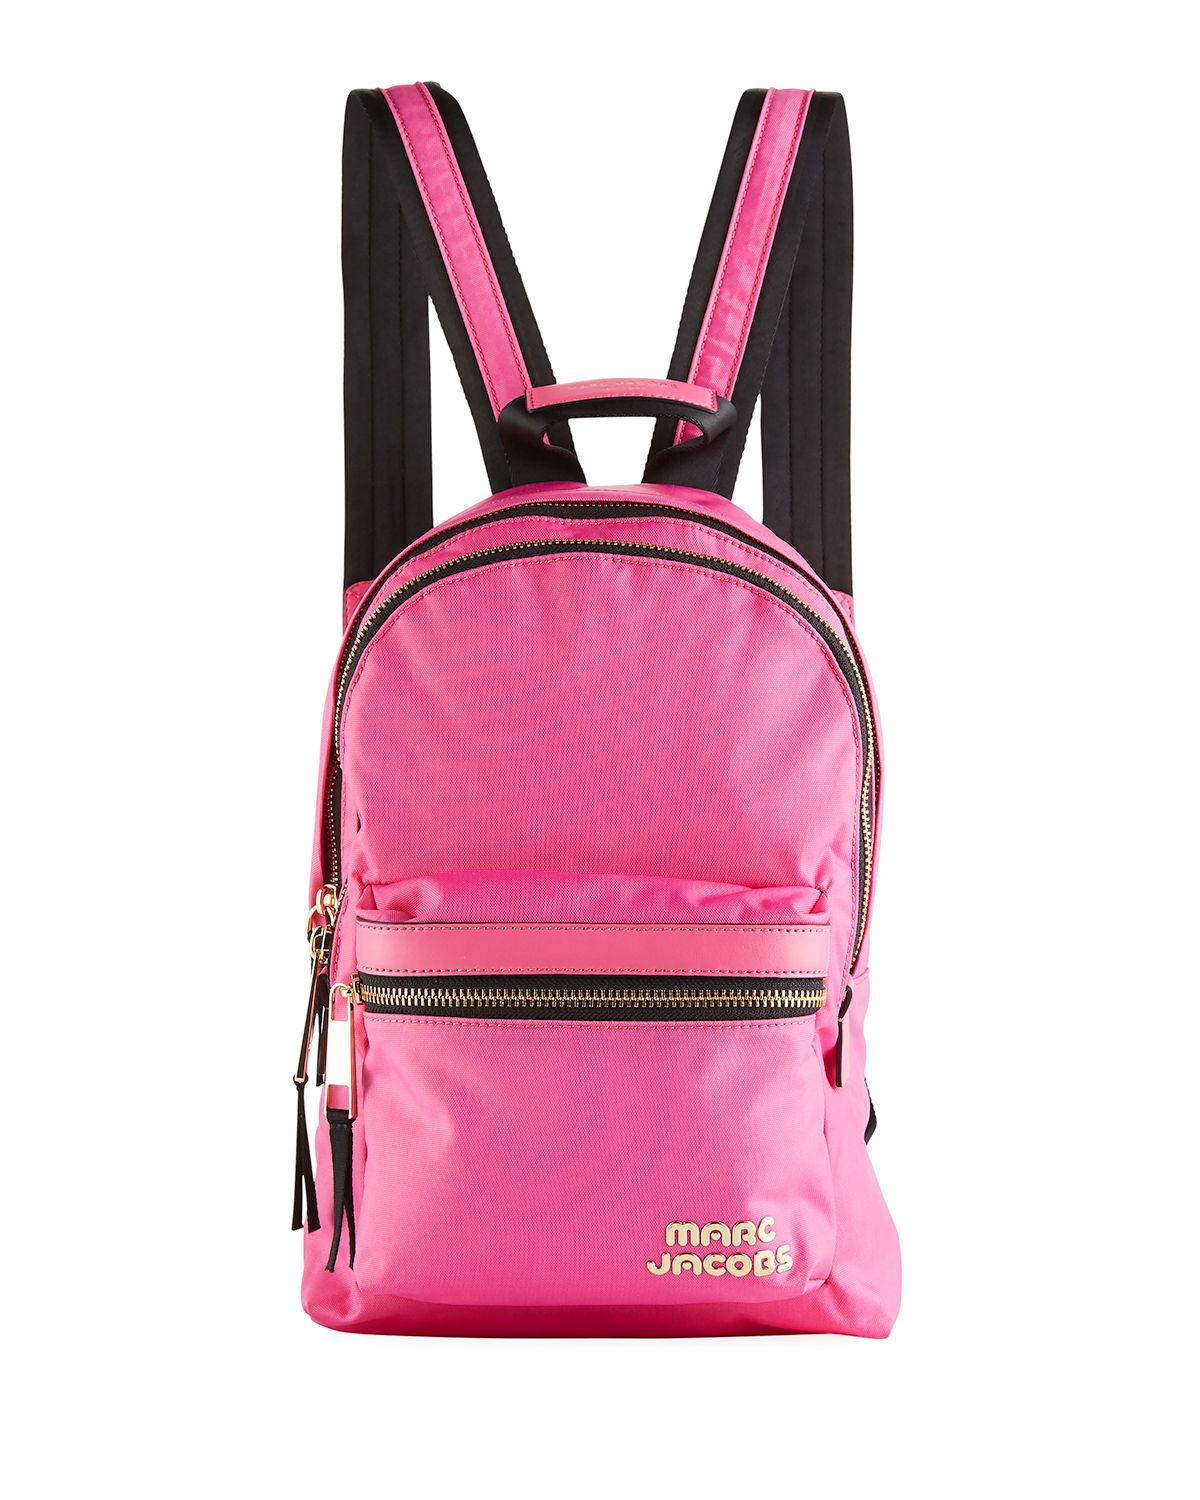 131b5ee68442 Top 10 Best Designer Backpacks- Fenix Toulouse Handball